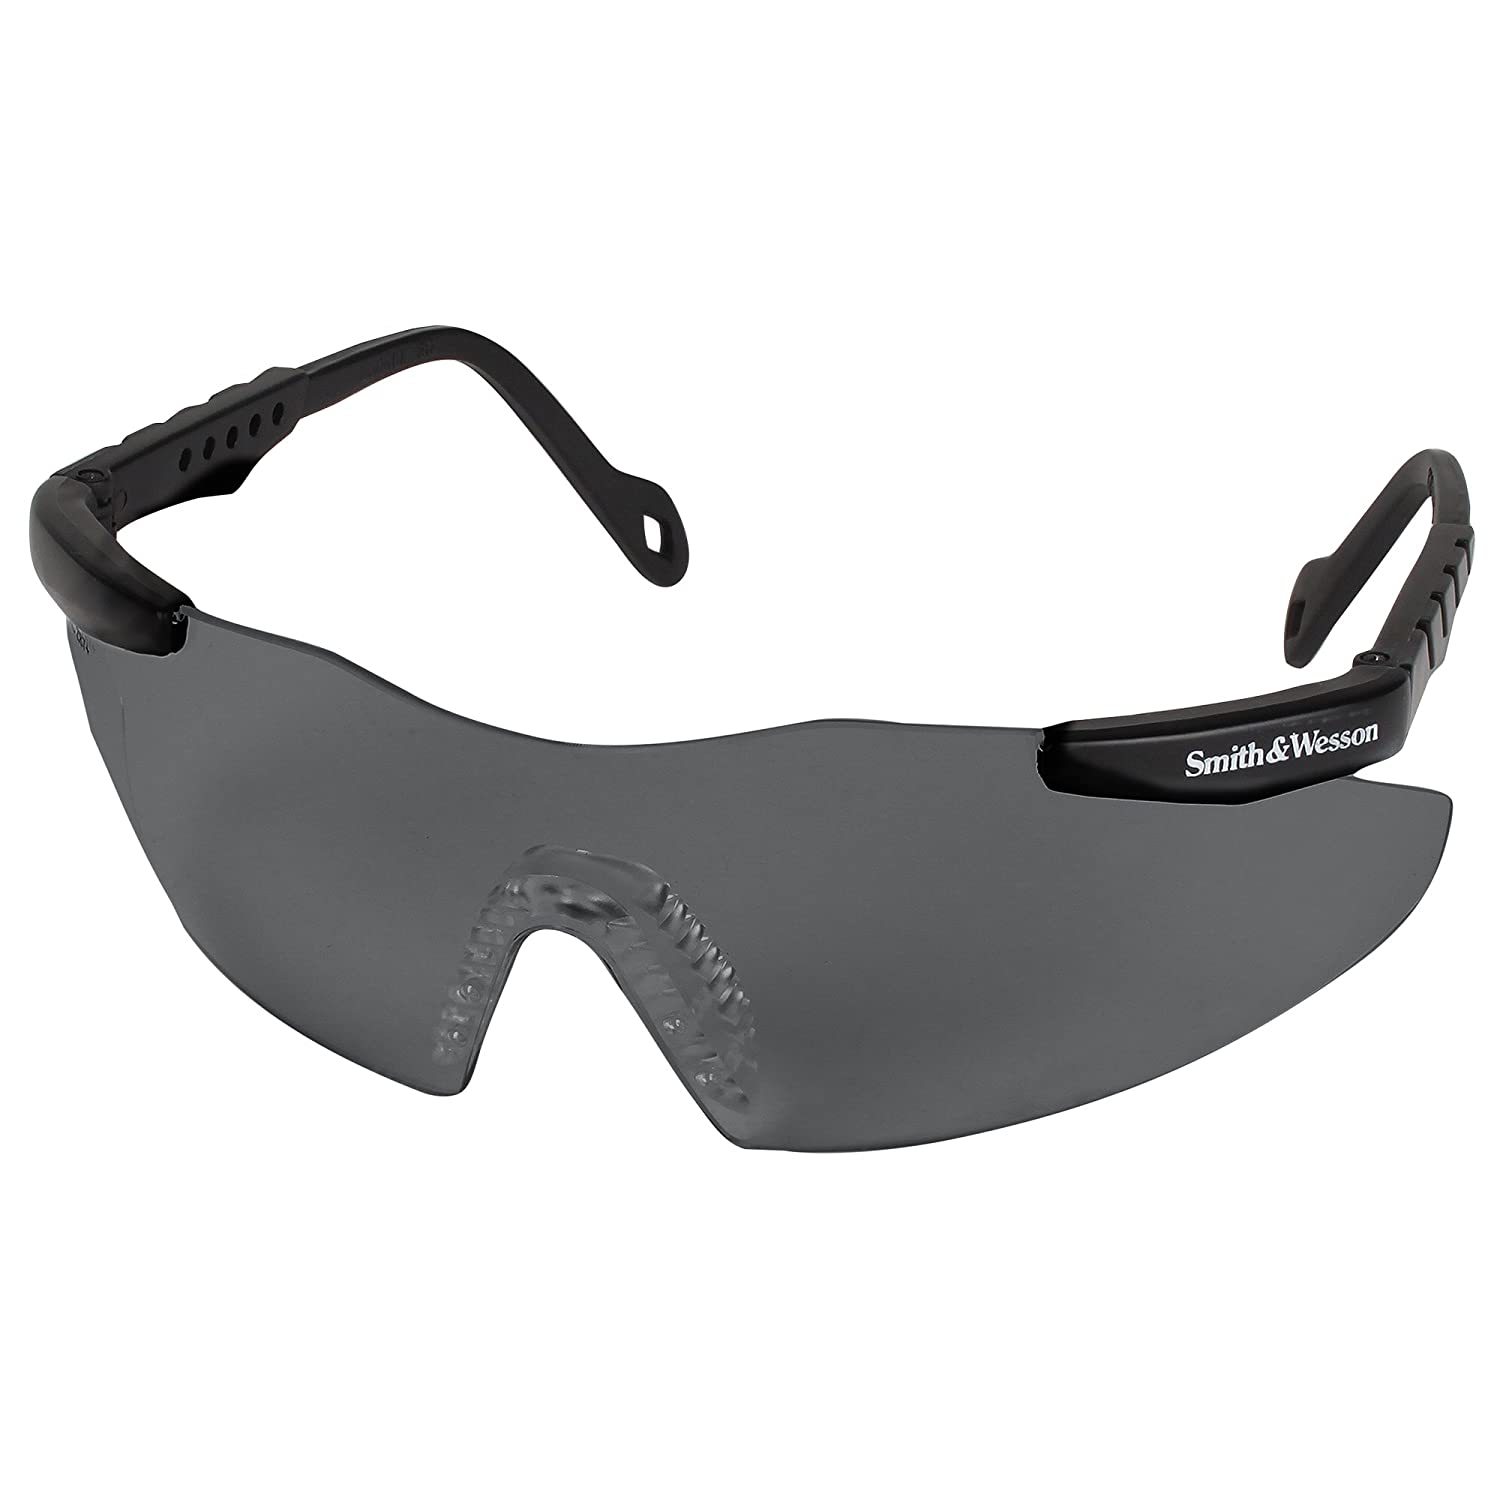 698dadb9e49 Smith and Wesson Safety Glasses (19823)